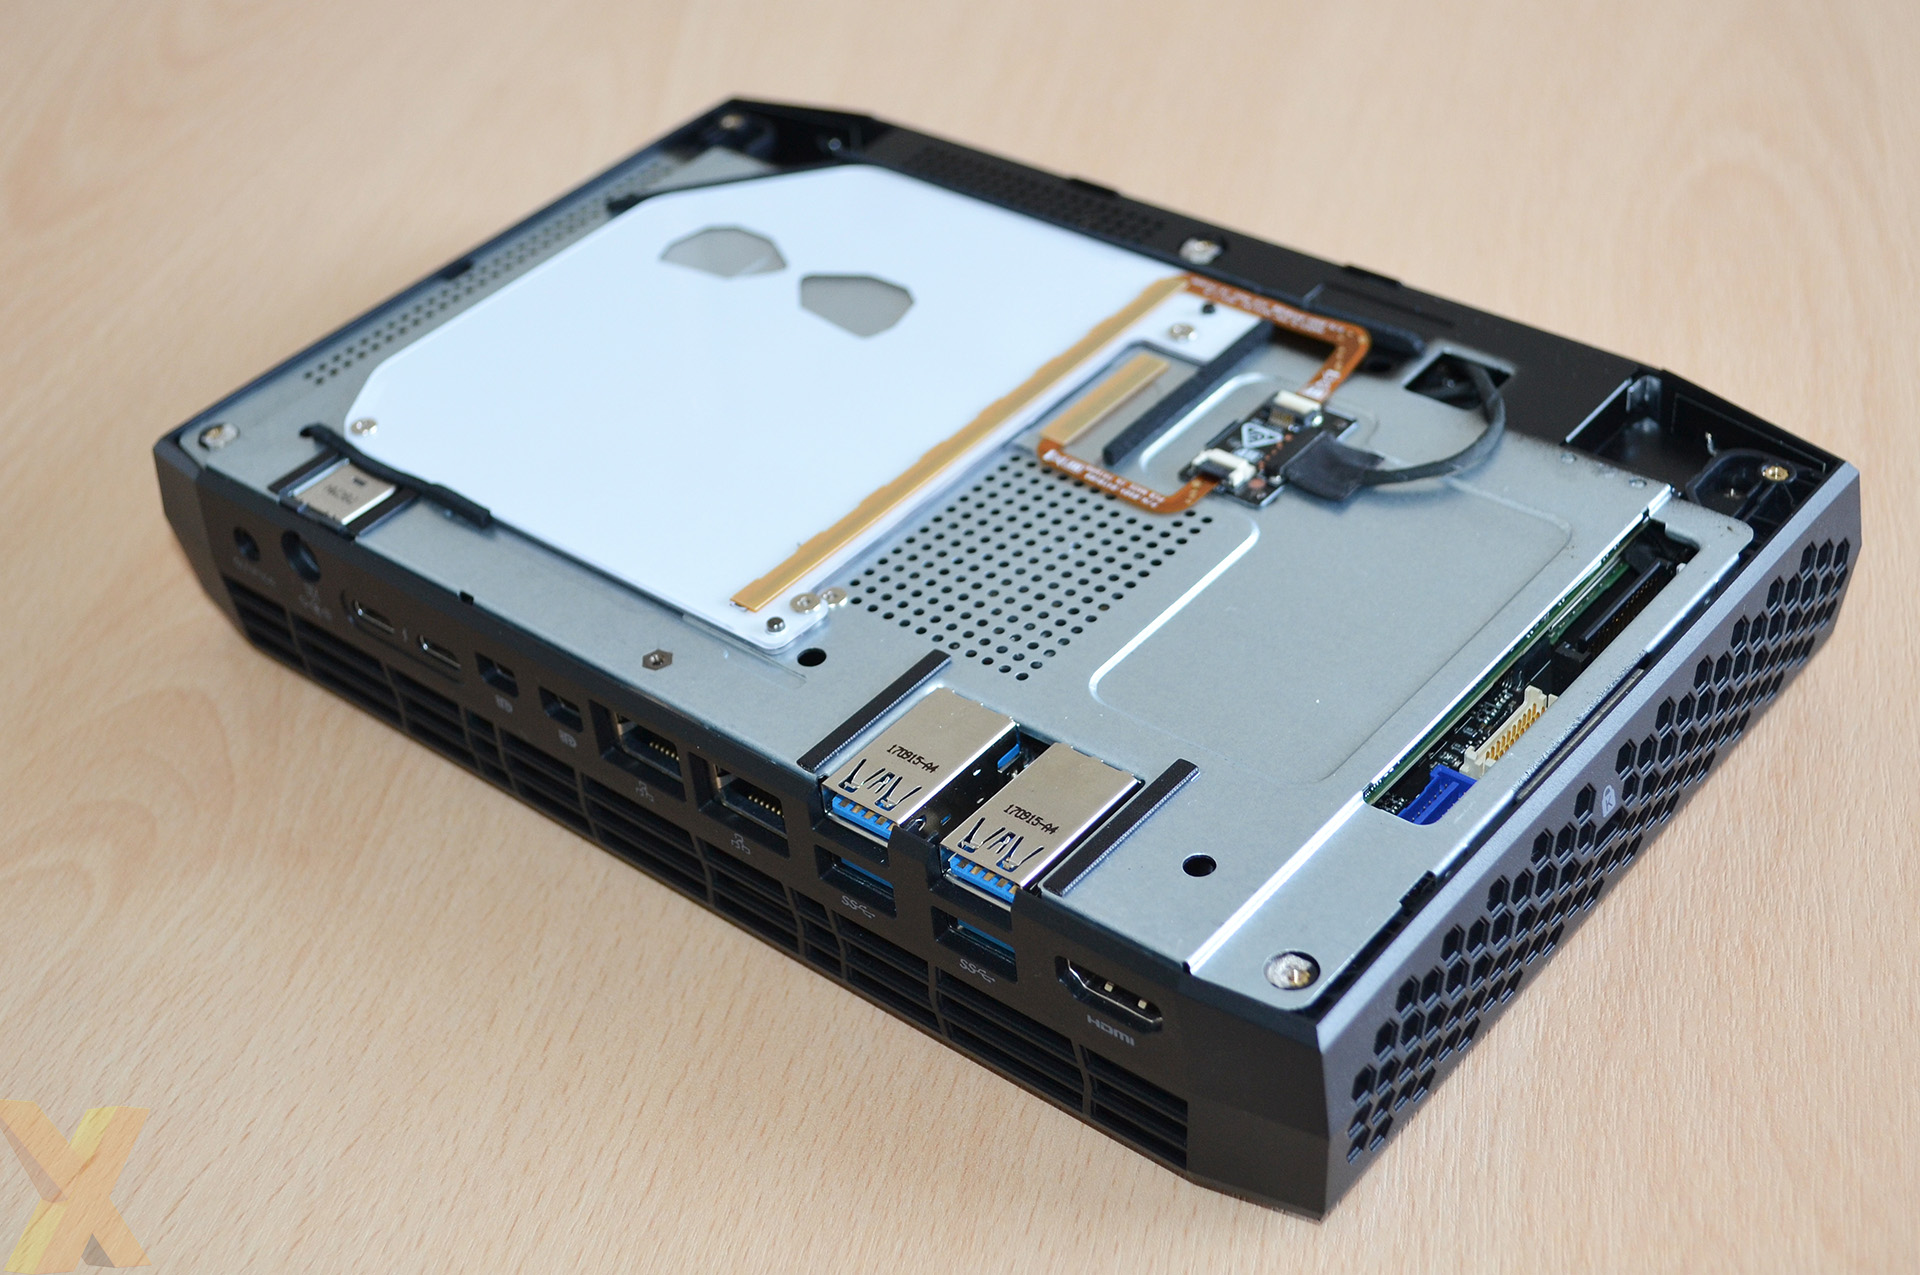 Review: Intel Hades Canyon NUC (NUC8i7HVK) - Systems - HEXUS net